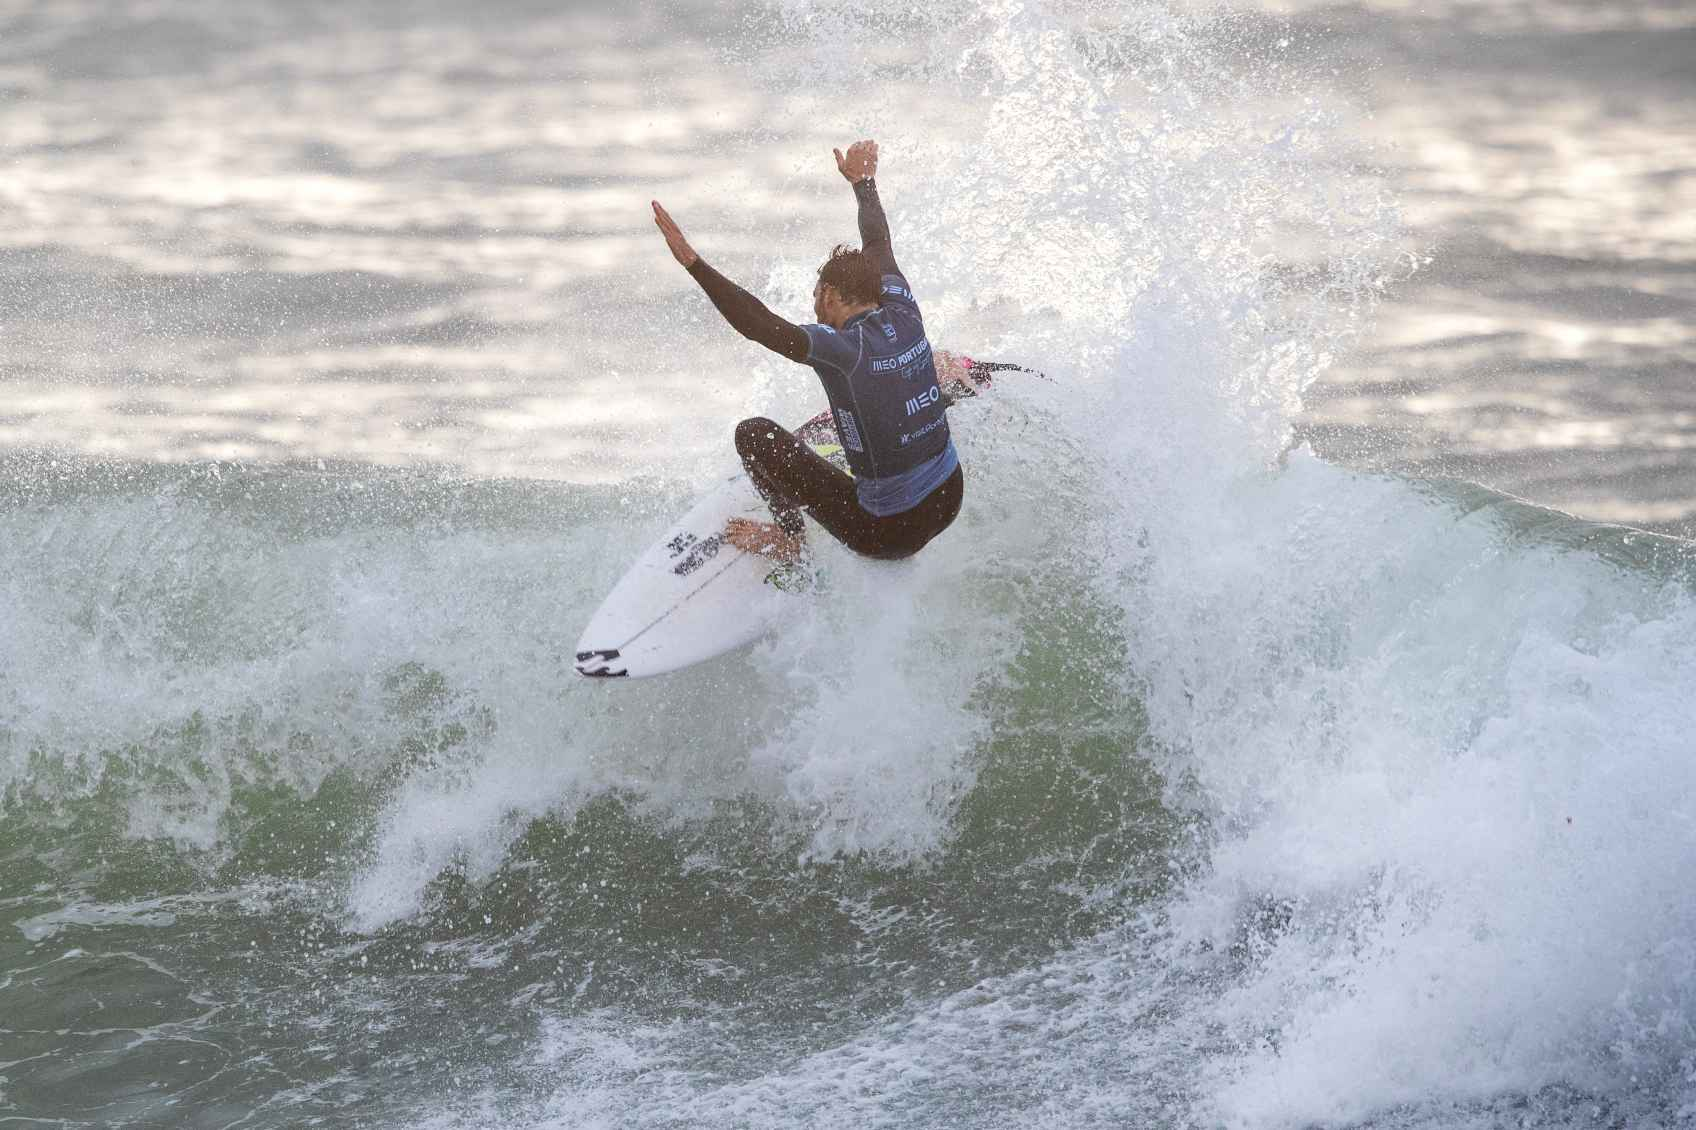 portugal wsl meo surf30 morais f7206MeoPortugal20Poullenot